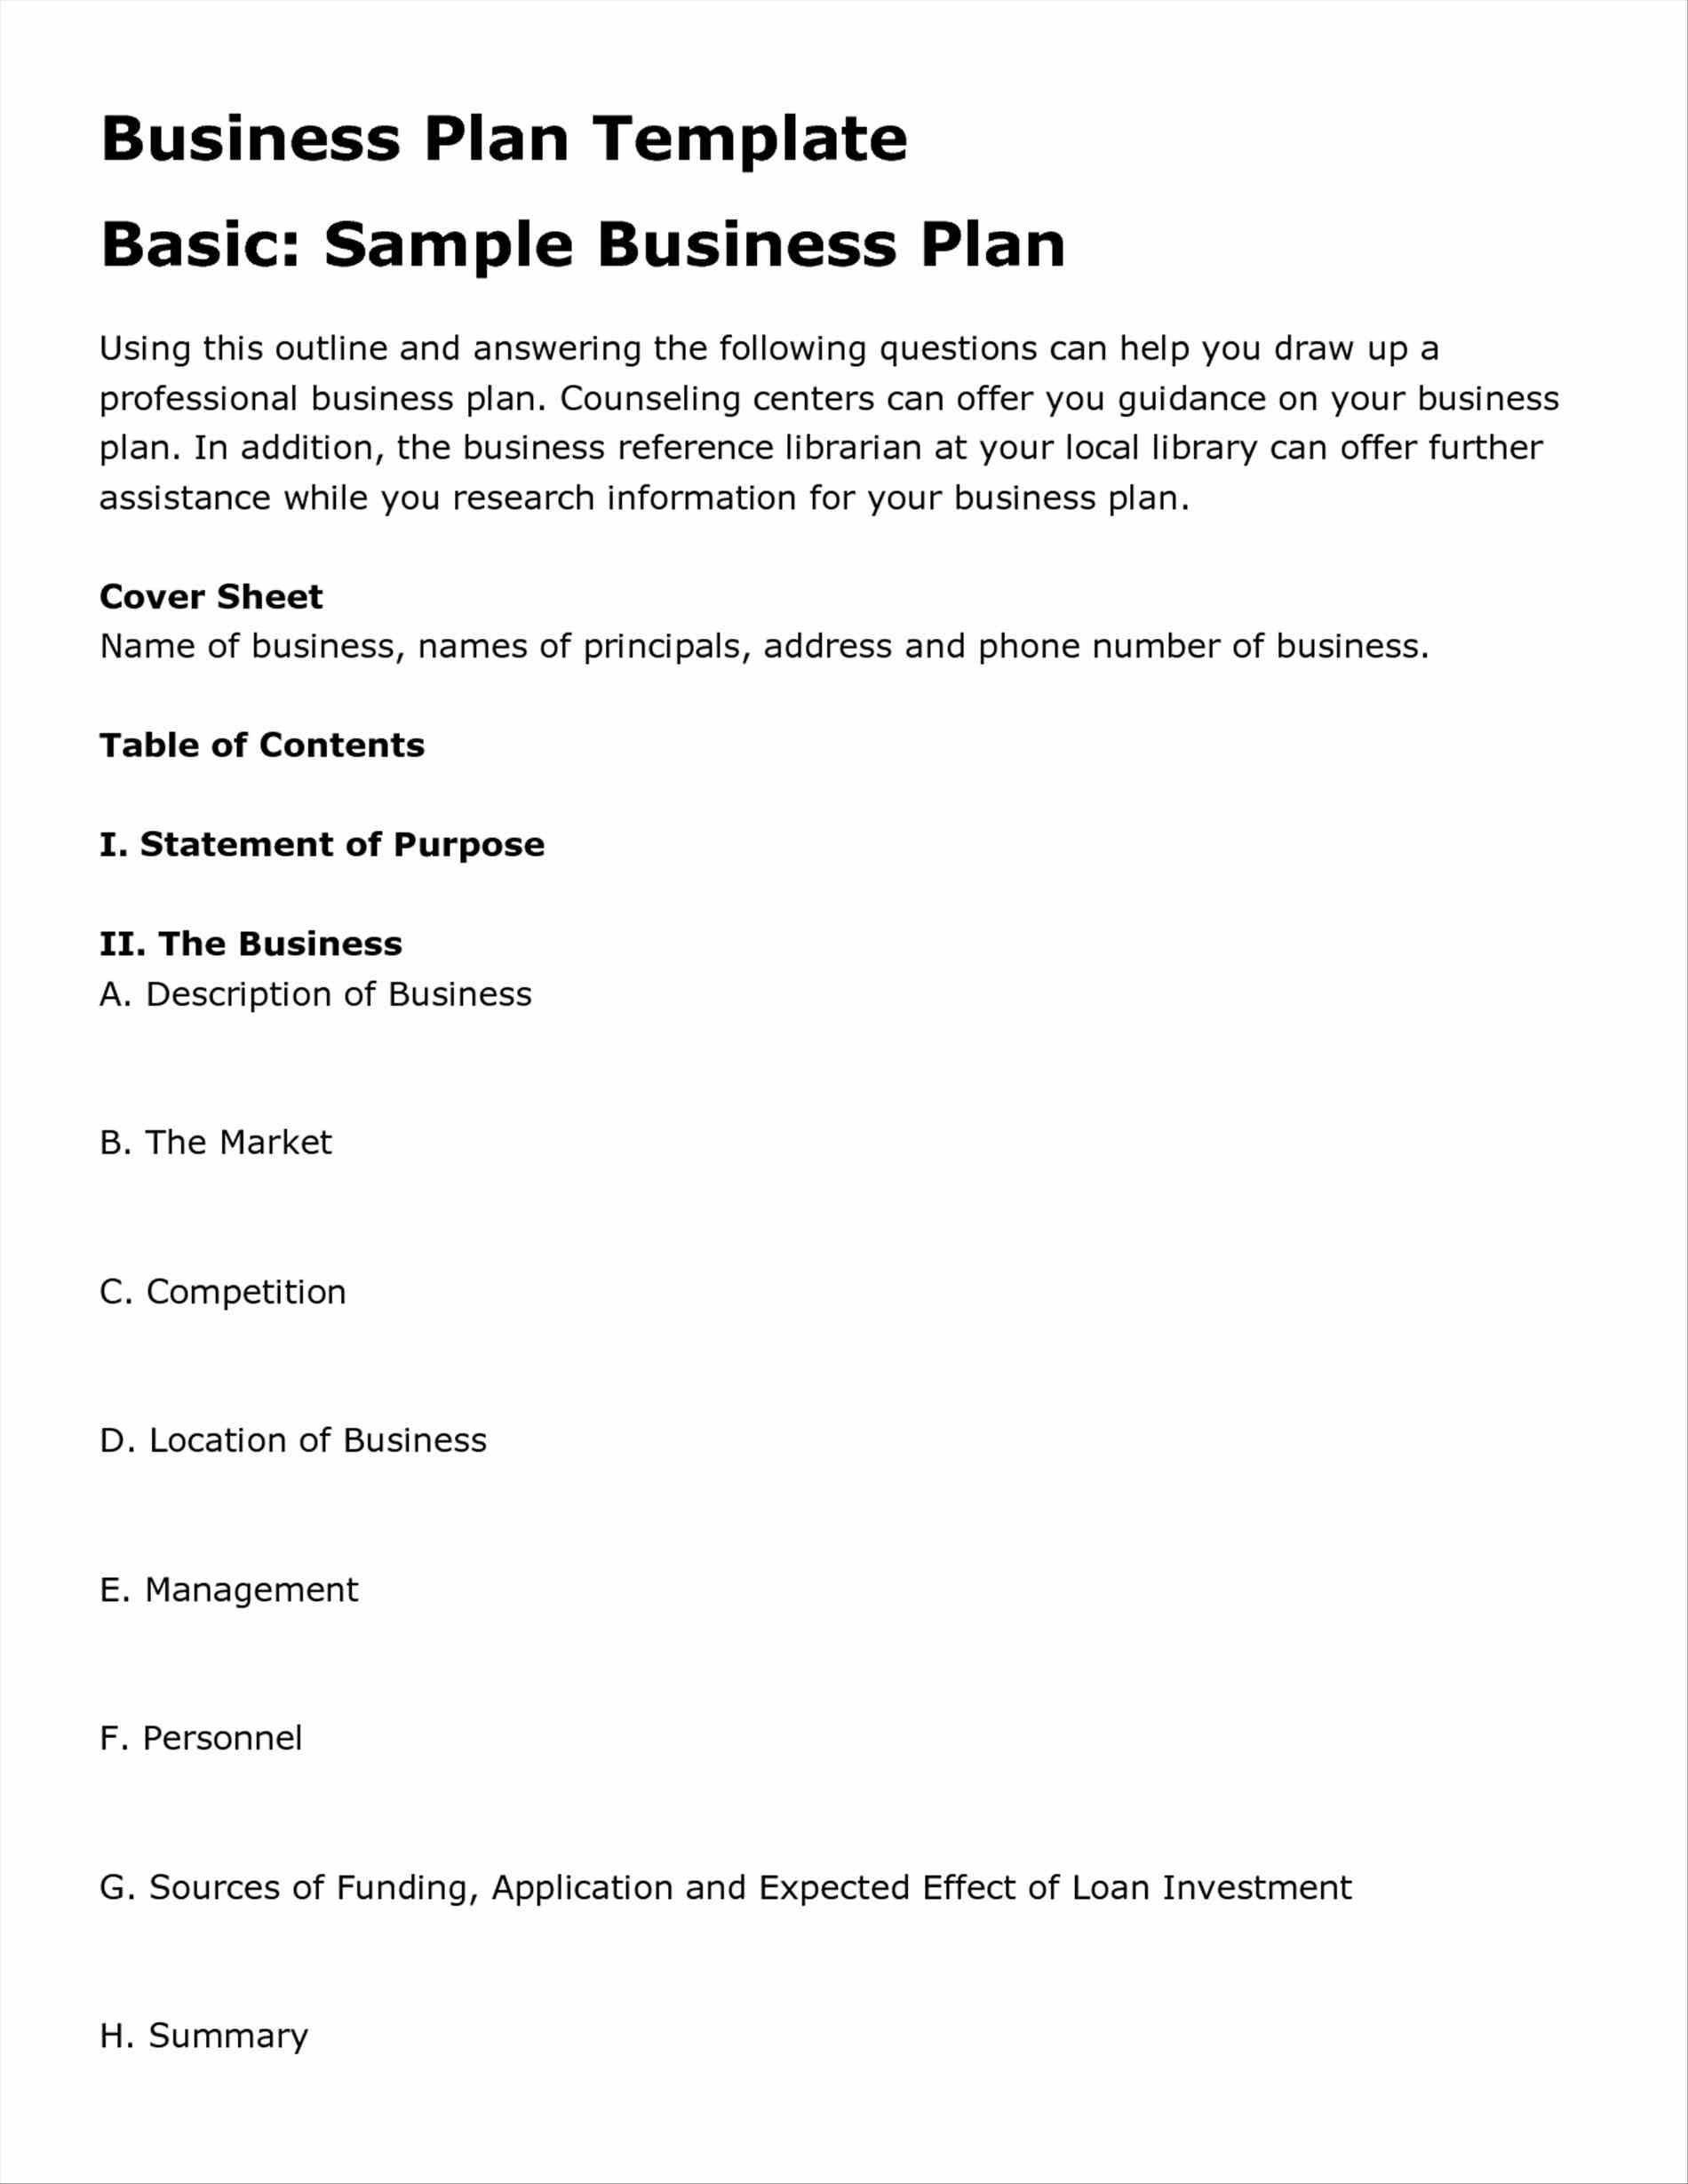 Business plan template restaurant templates in word excel pdf free business plan template restaurant templates in word excel pdf free cafe business plan template restaurant business plan templates in word excel accmission Choice Image